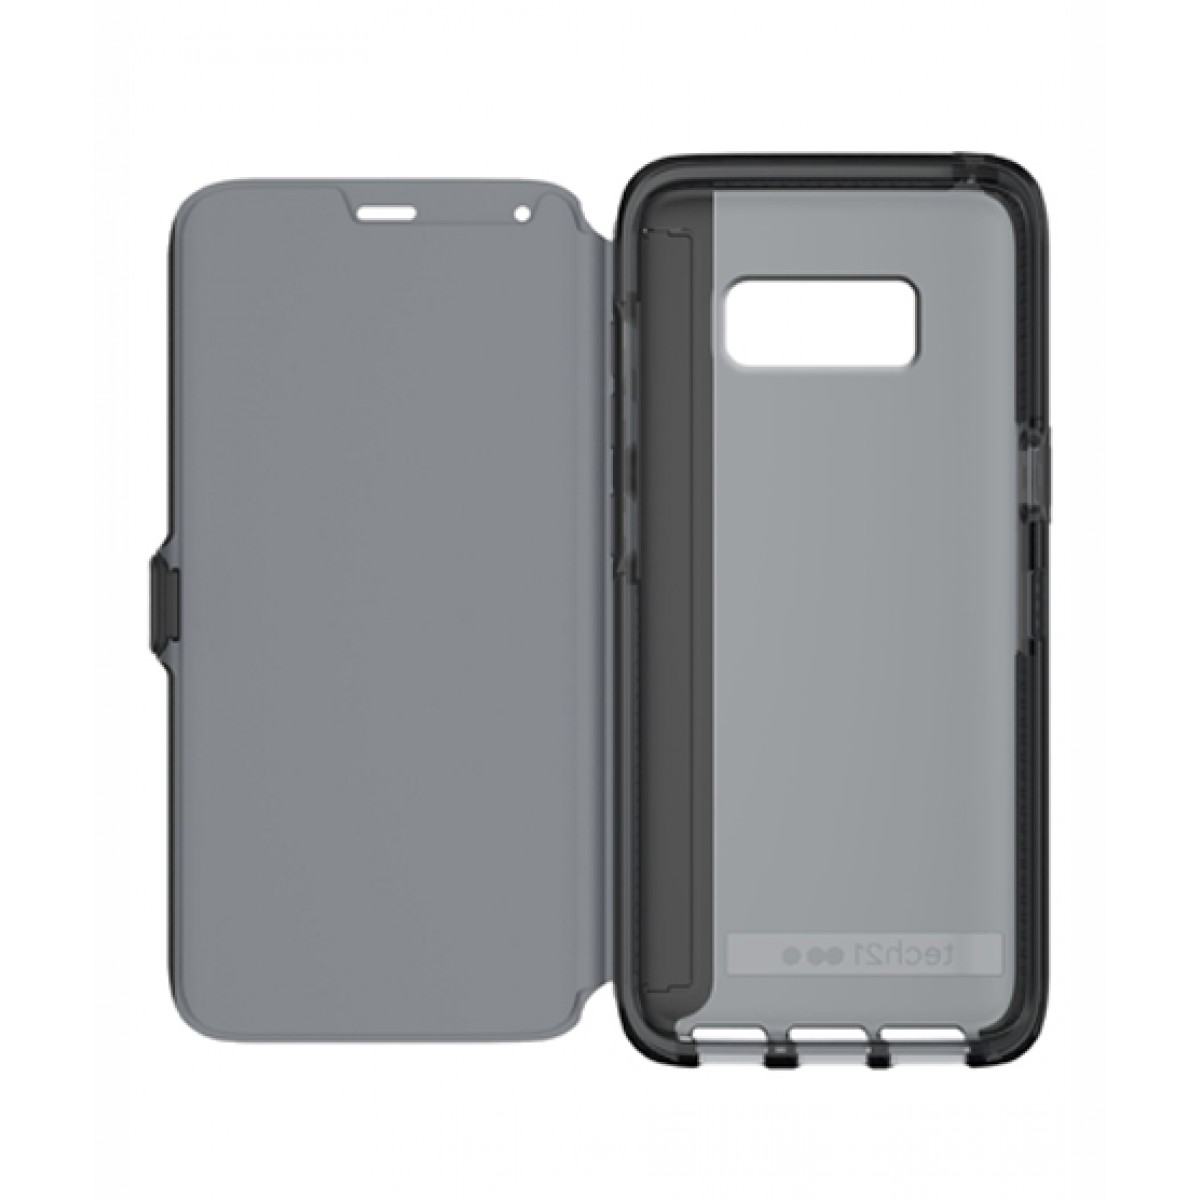 brand new 9d2ae 77197 Tech21 Evo Wallet Black Case For Galaxy S8